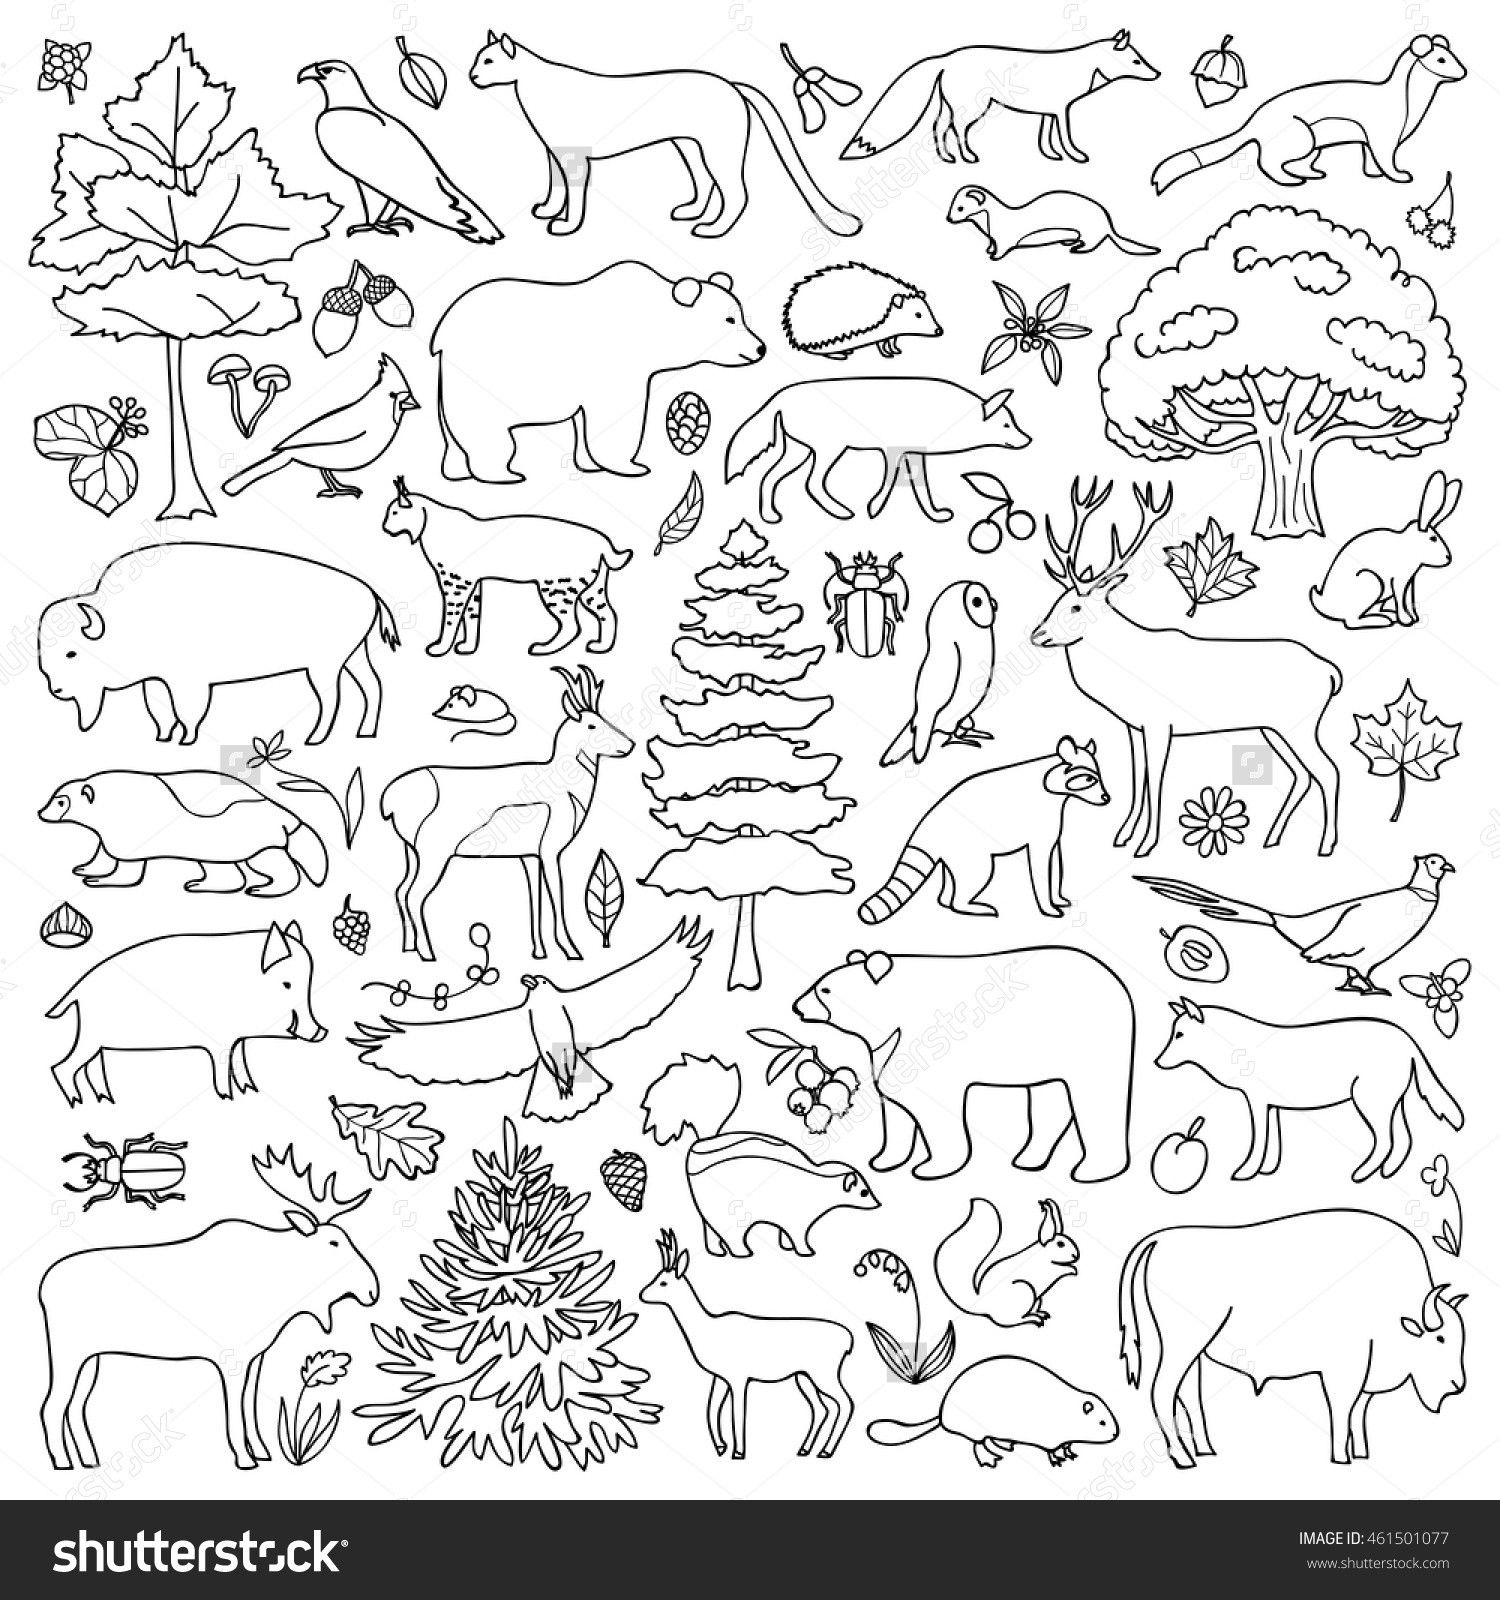 7 Forest Animals Preschool Worksheets F0cbe